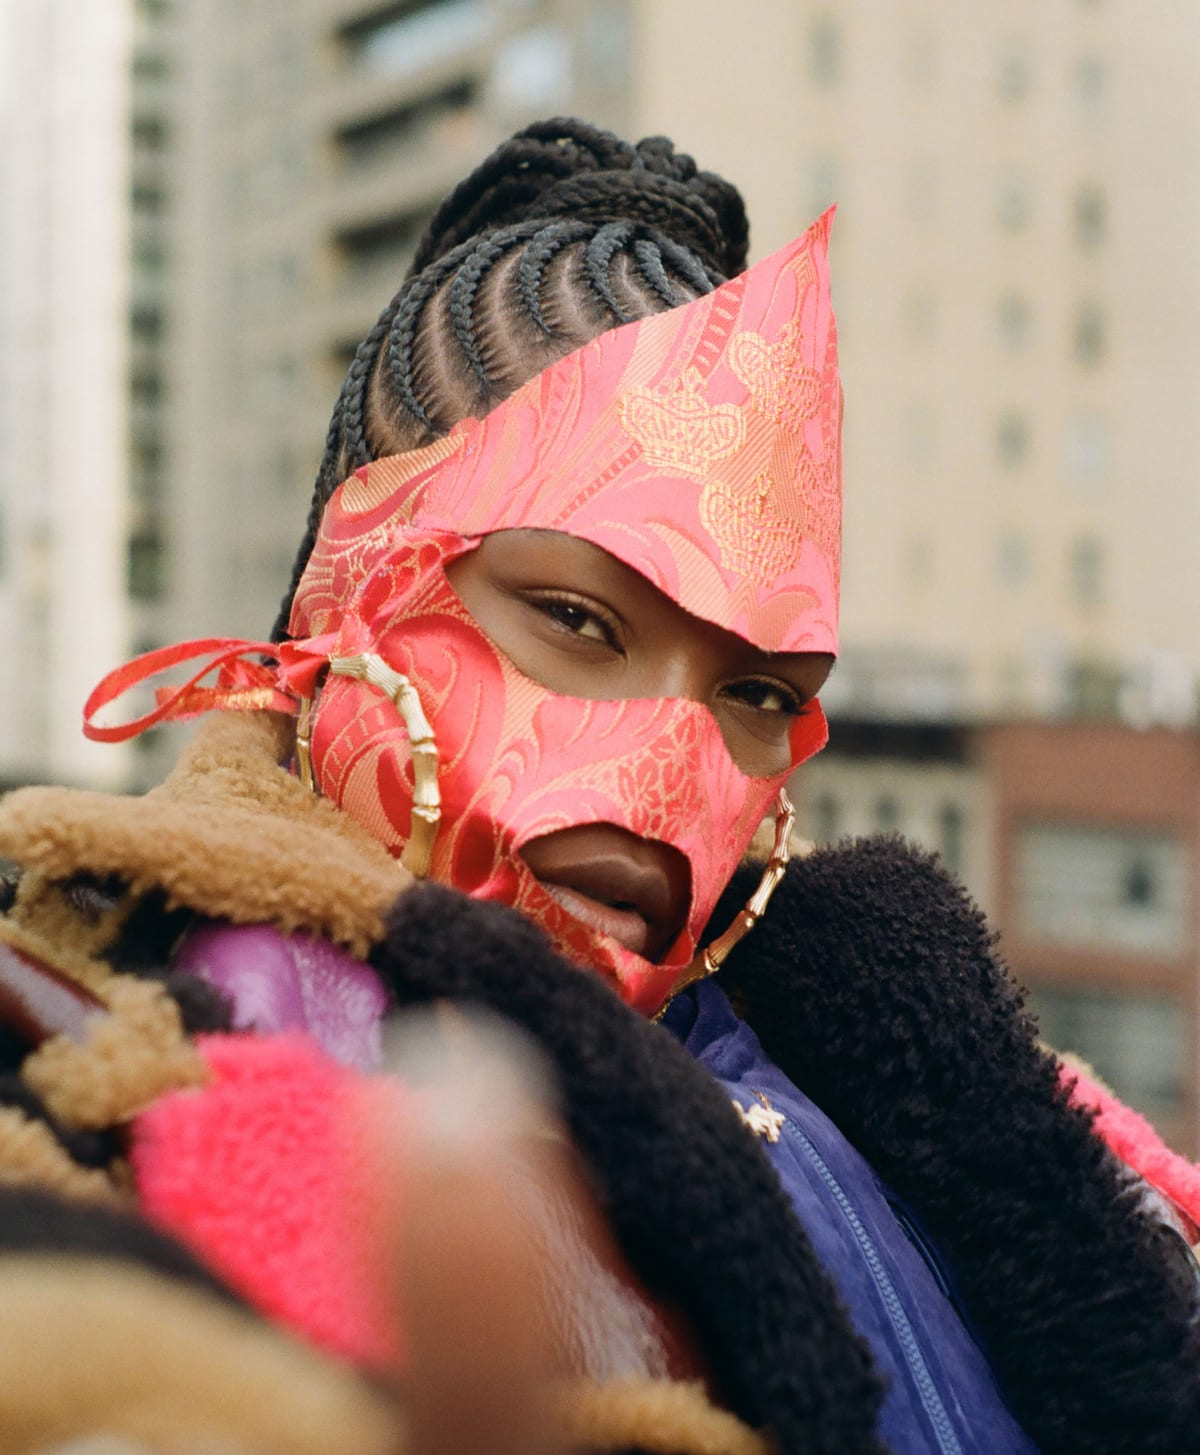 leikeli47-press-philip-daniel-ducasse